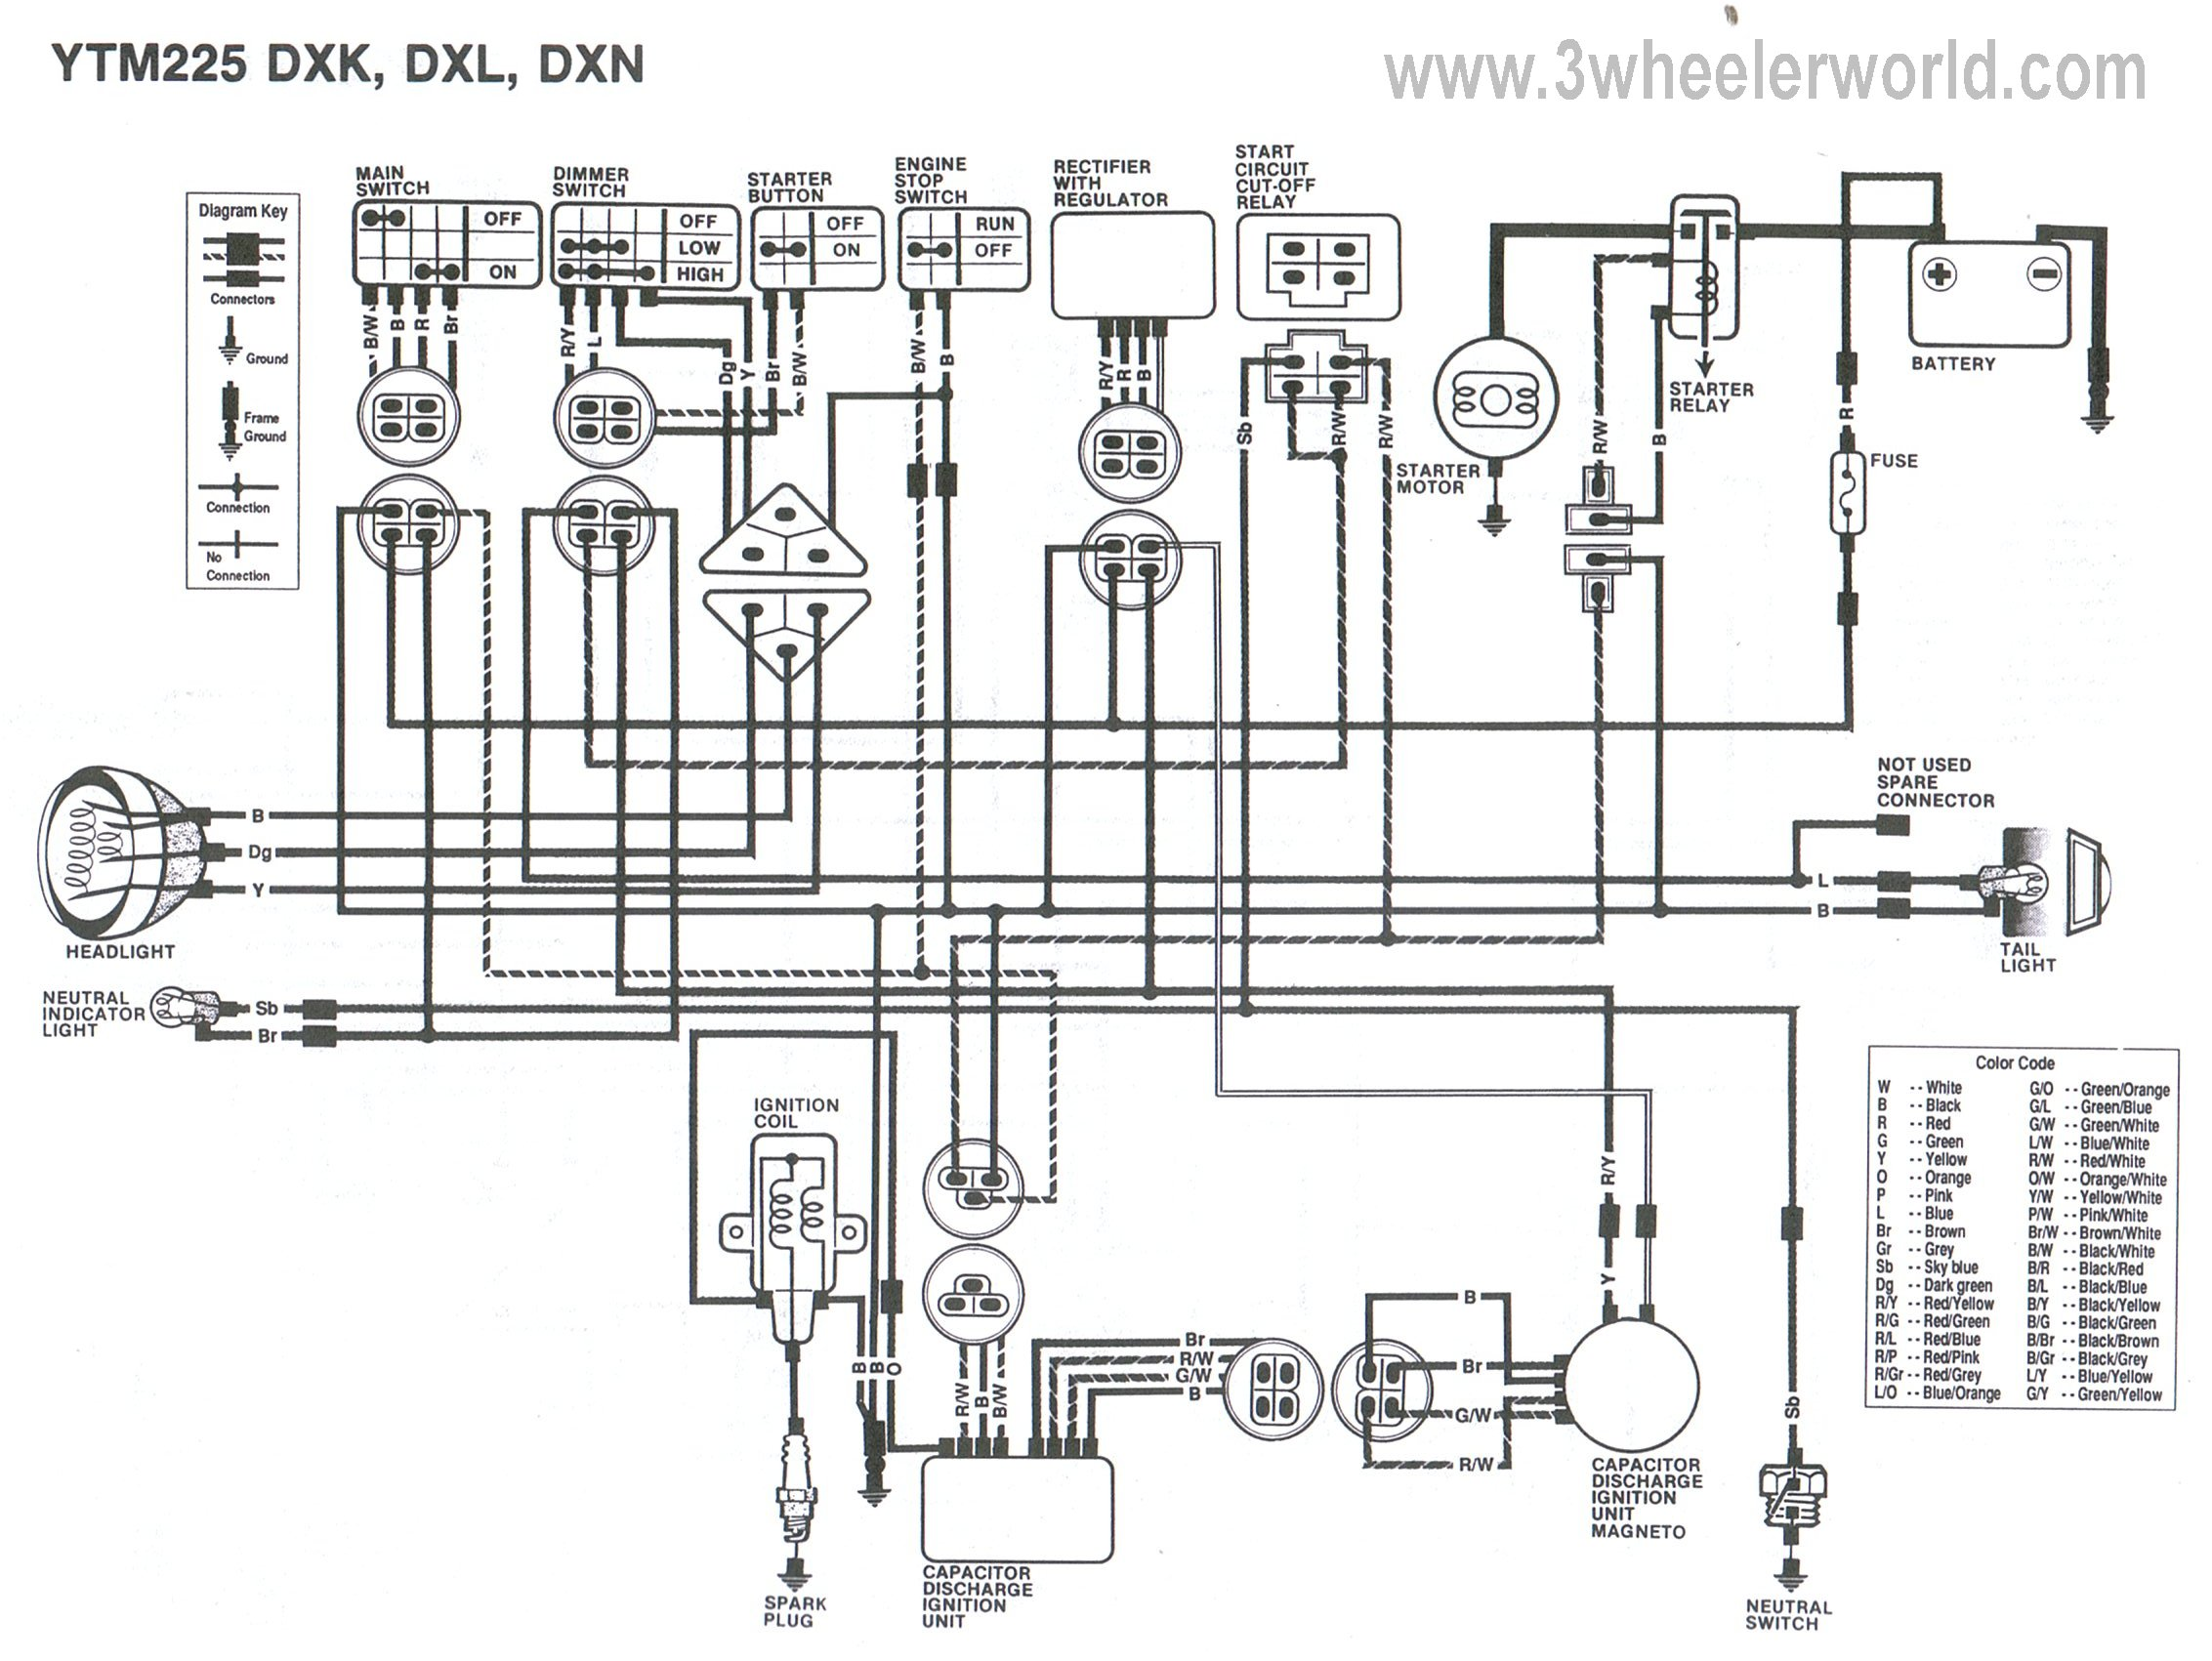 200cc wiring diagram best part of wiring diagramsuzuki dr 800 wiring diagram wiring diagram